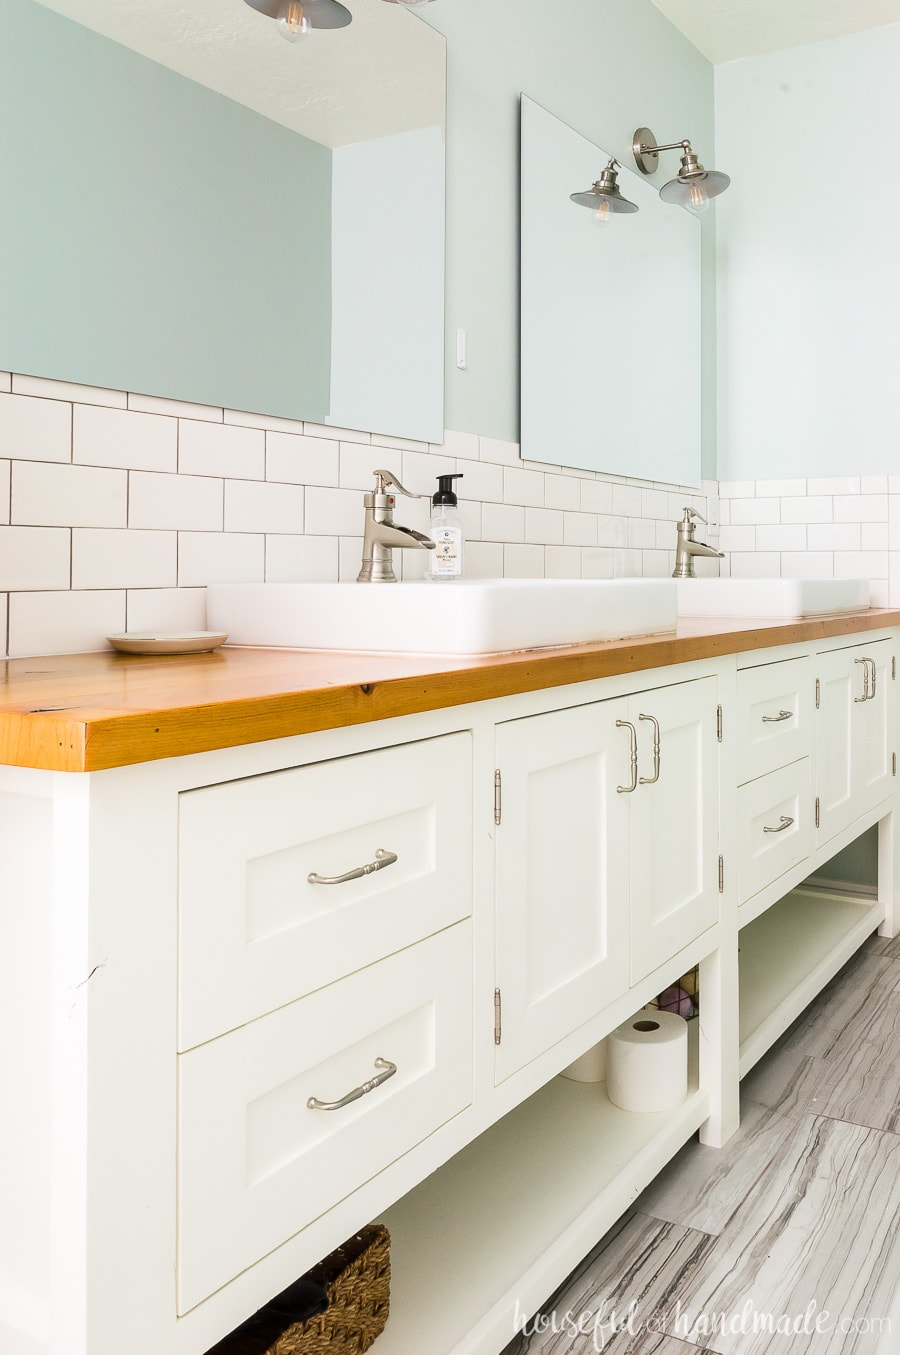 A DIY master bathroom retreat with a large 8' white mission style open shelf bathroom vanity with natural wood vanity top. White square vessel sinks and white subway tile on backsplash. Frameless mirrors against gray-green walls make a peaceful space.